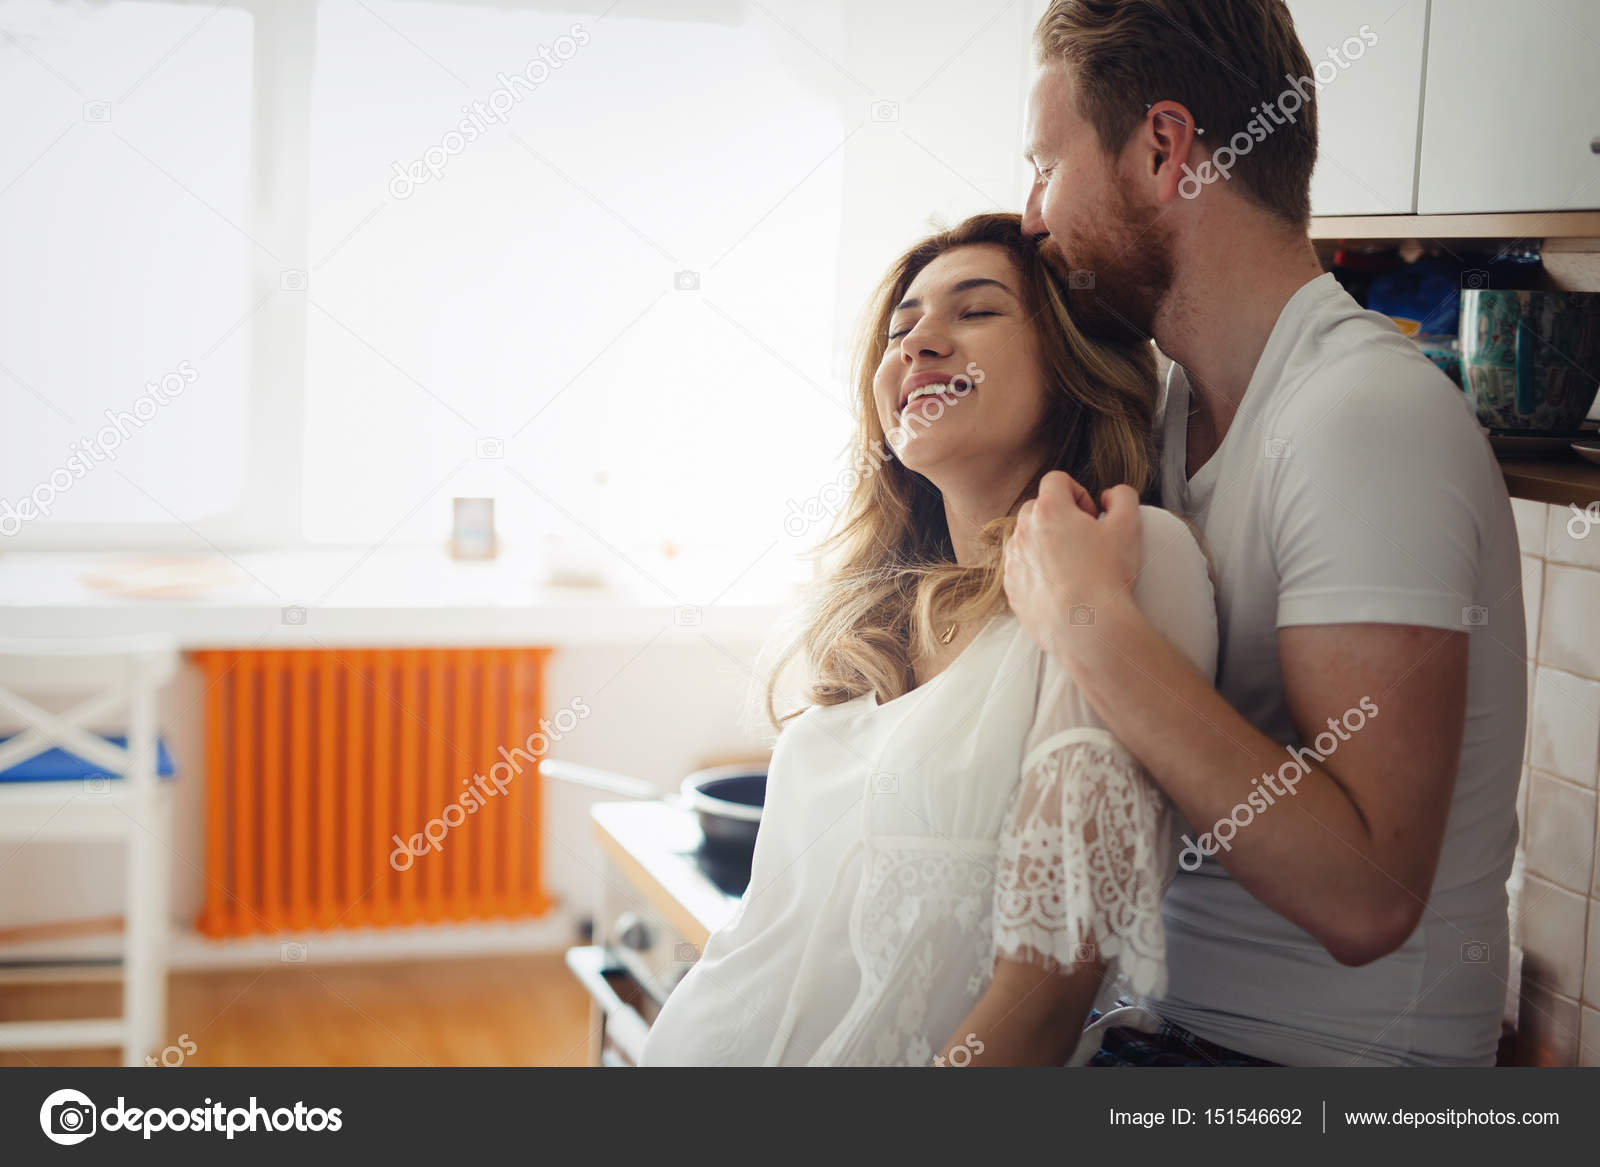 Romantic couple in love in kitchen — Stock Photo © nd3000 #151546692